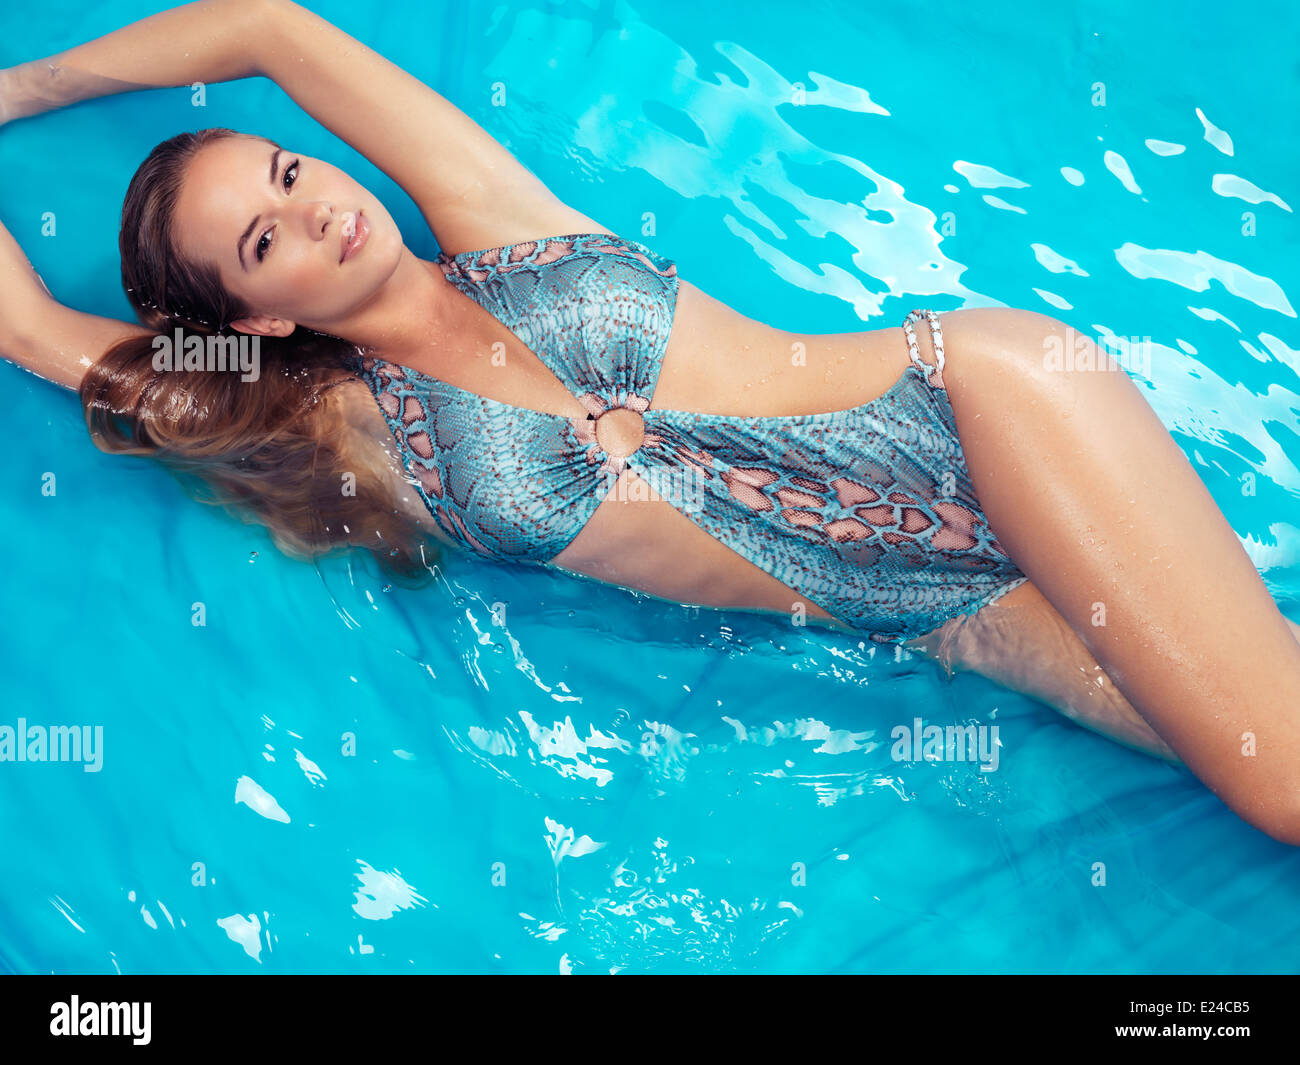 Young smiling woman wearing a swimsuit lying in blue water - Stock Image